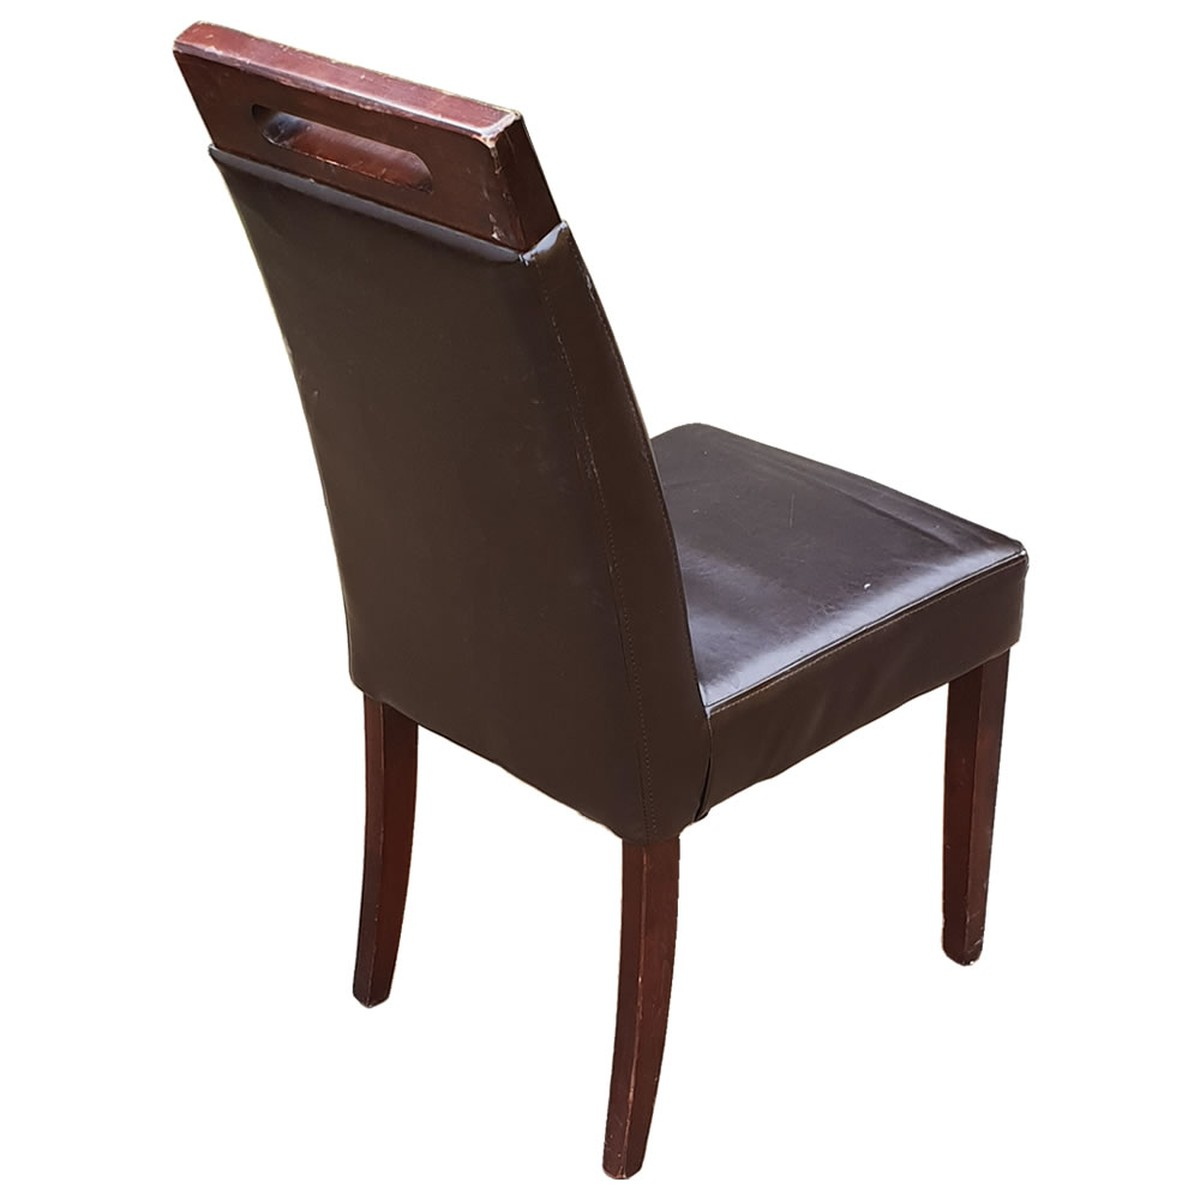 Enjoyable 20X Ex Restaurant Brown Leather Dining Chairs Product Code Mf3148 Peterborough Cambridgeshire Evergreenethics Interior Chair Design Evergreenethicsorg